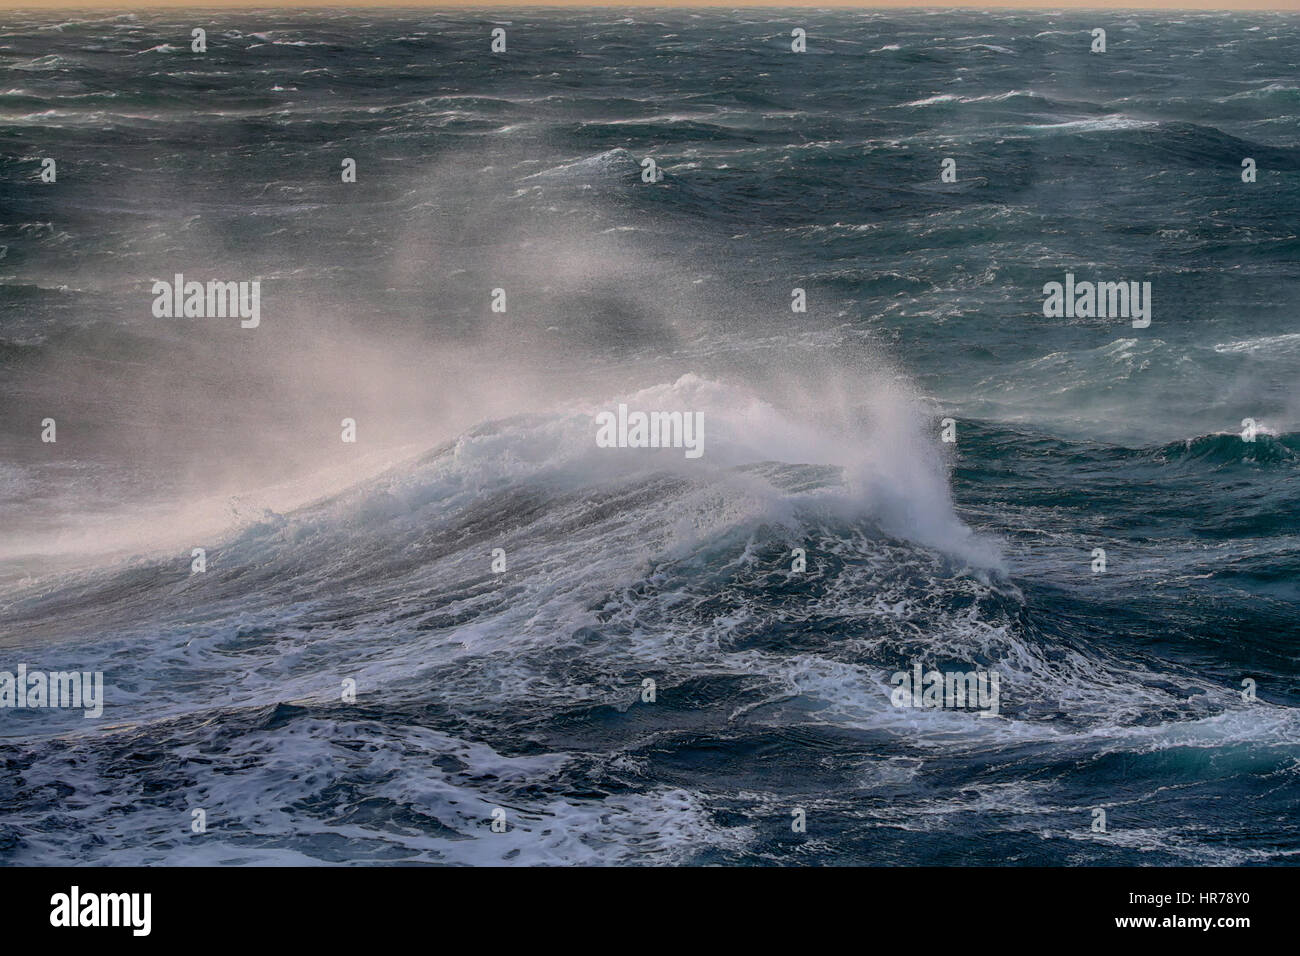 Global climate change. Next hurricane in ocean: wind raises enormous waves and floods mainland - Stock Image